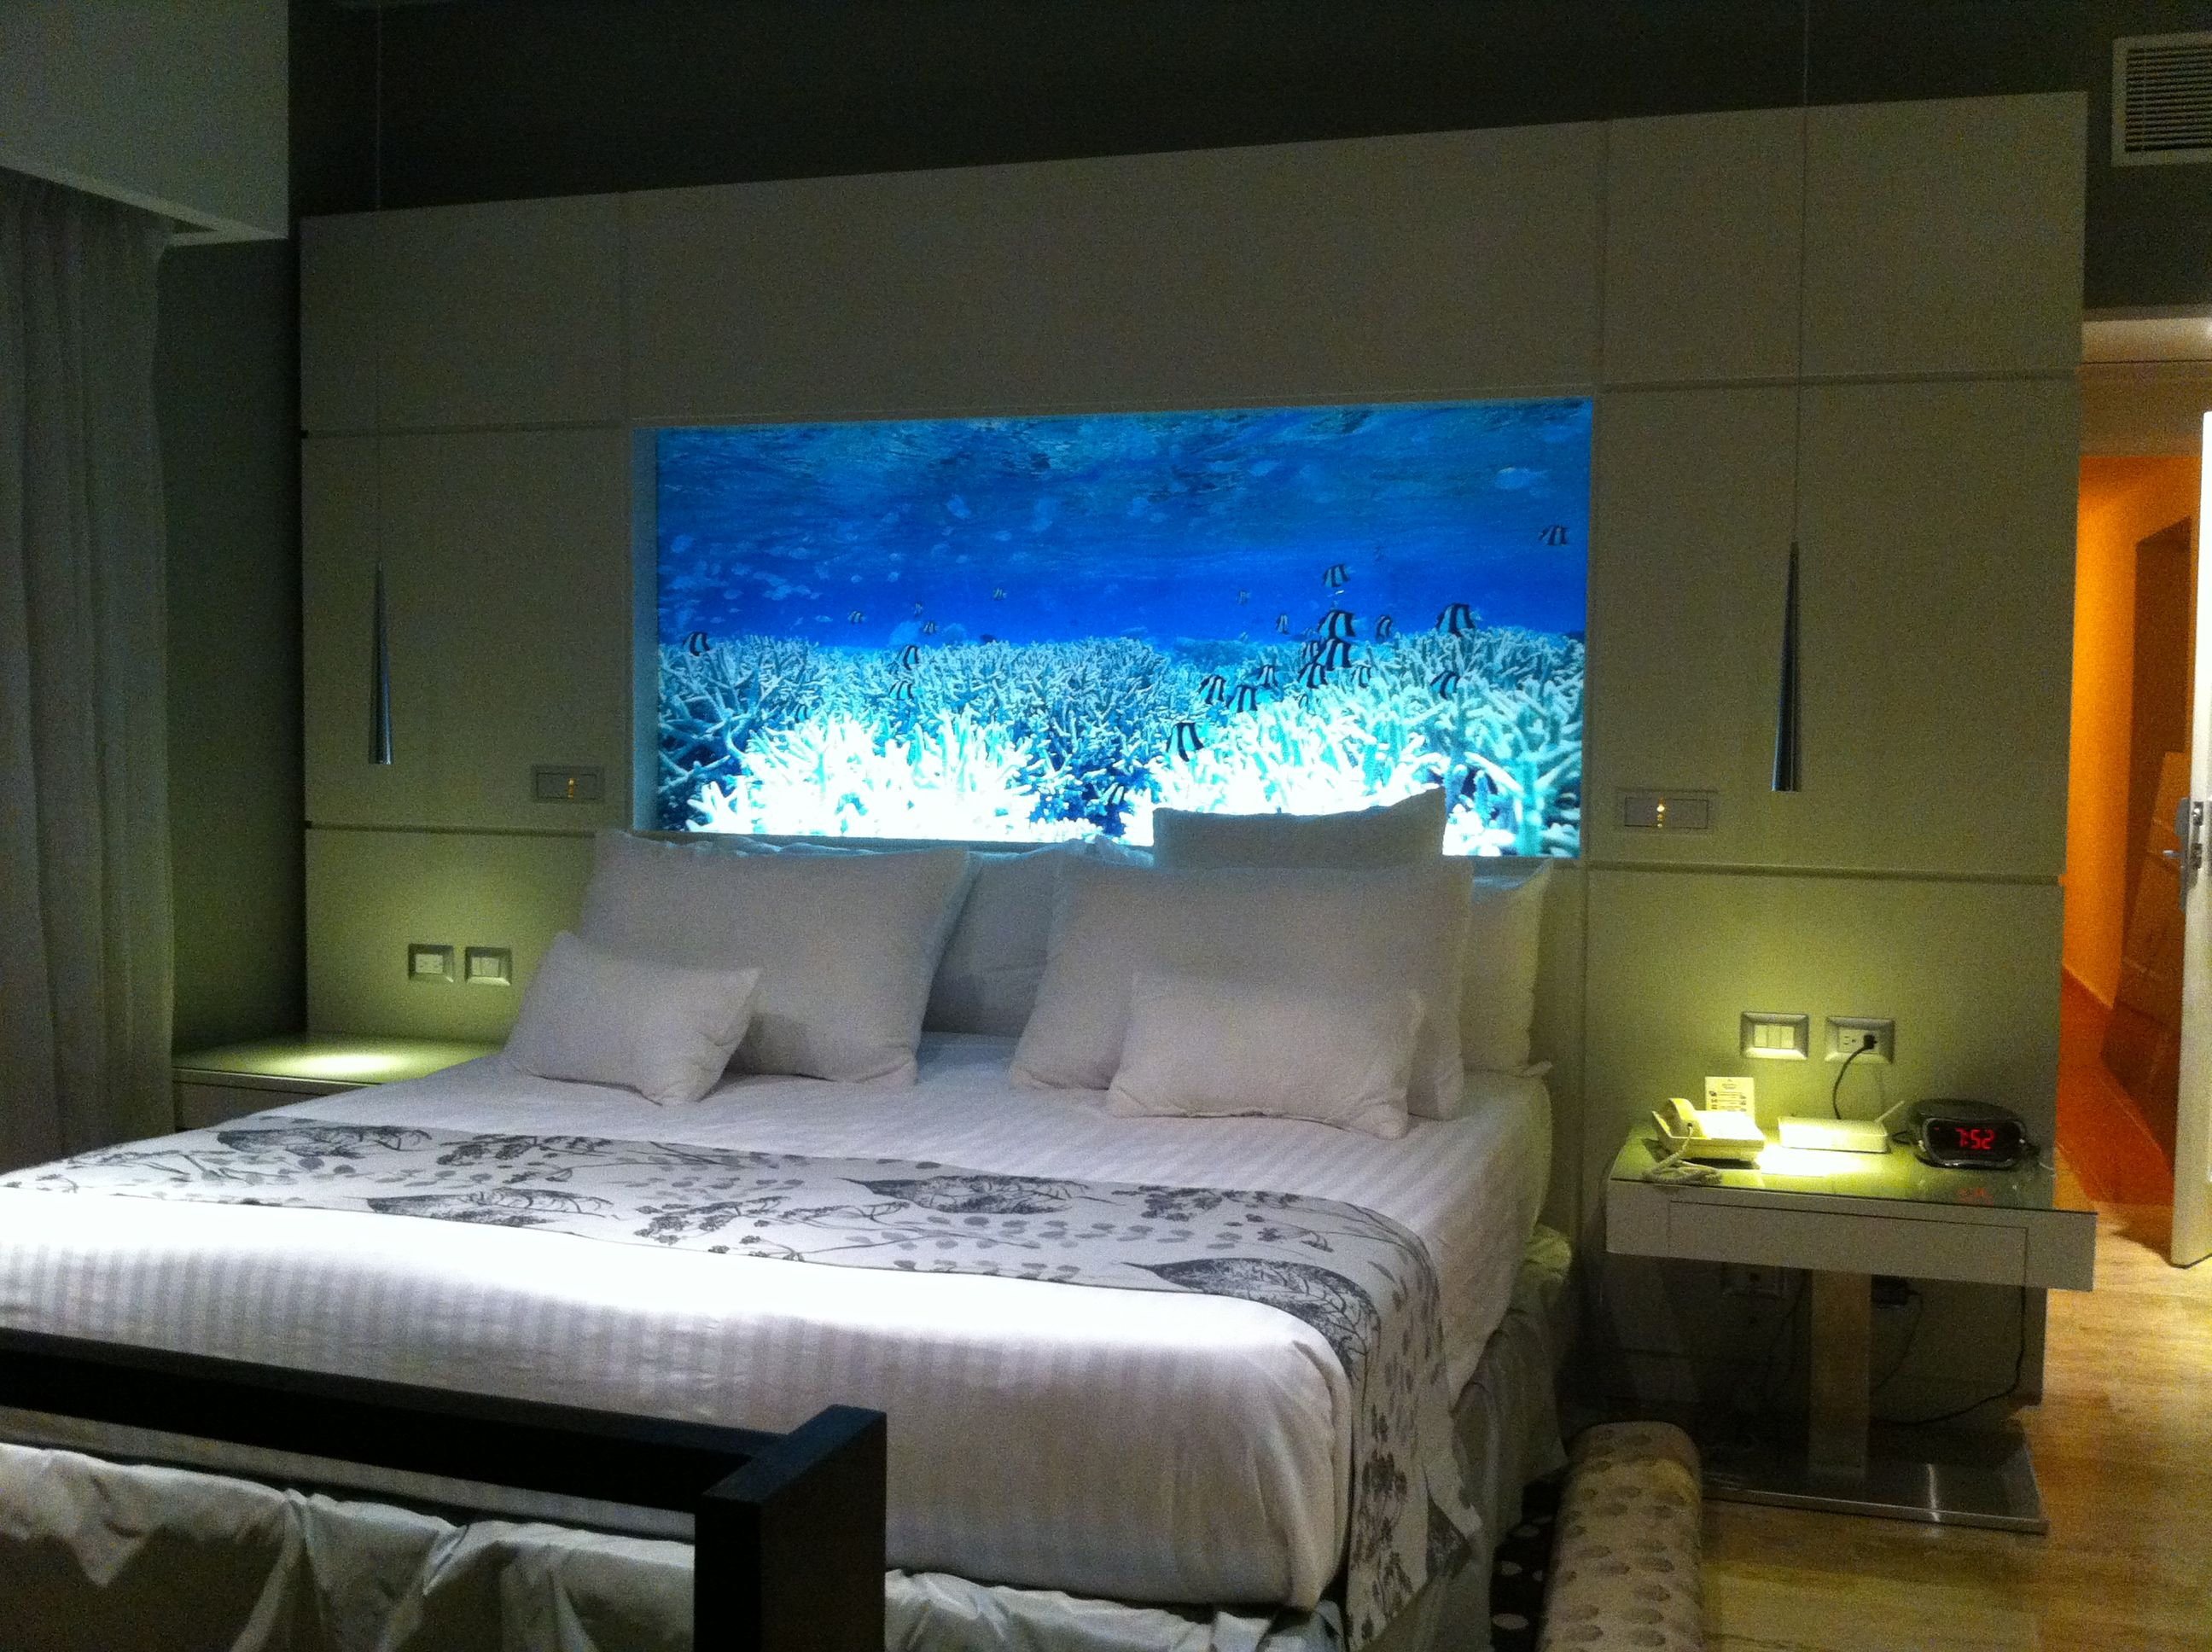 Fish tank bedroom furniture - Inexpensive And Unique Bedroom Furniture Ideas That Reflect The Newest Trends Can Change Rooms Into Comfortable Stylish And Pleasant Retreats